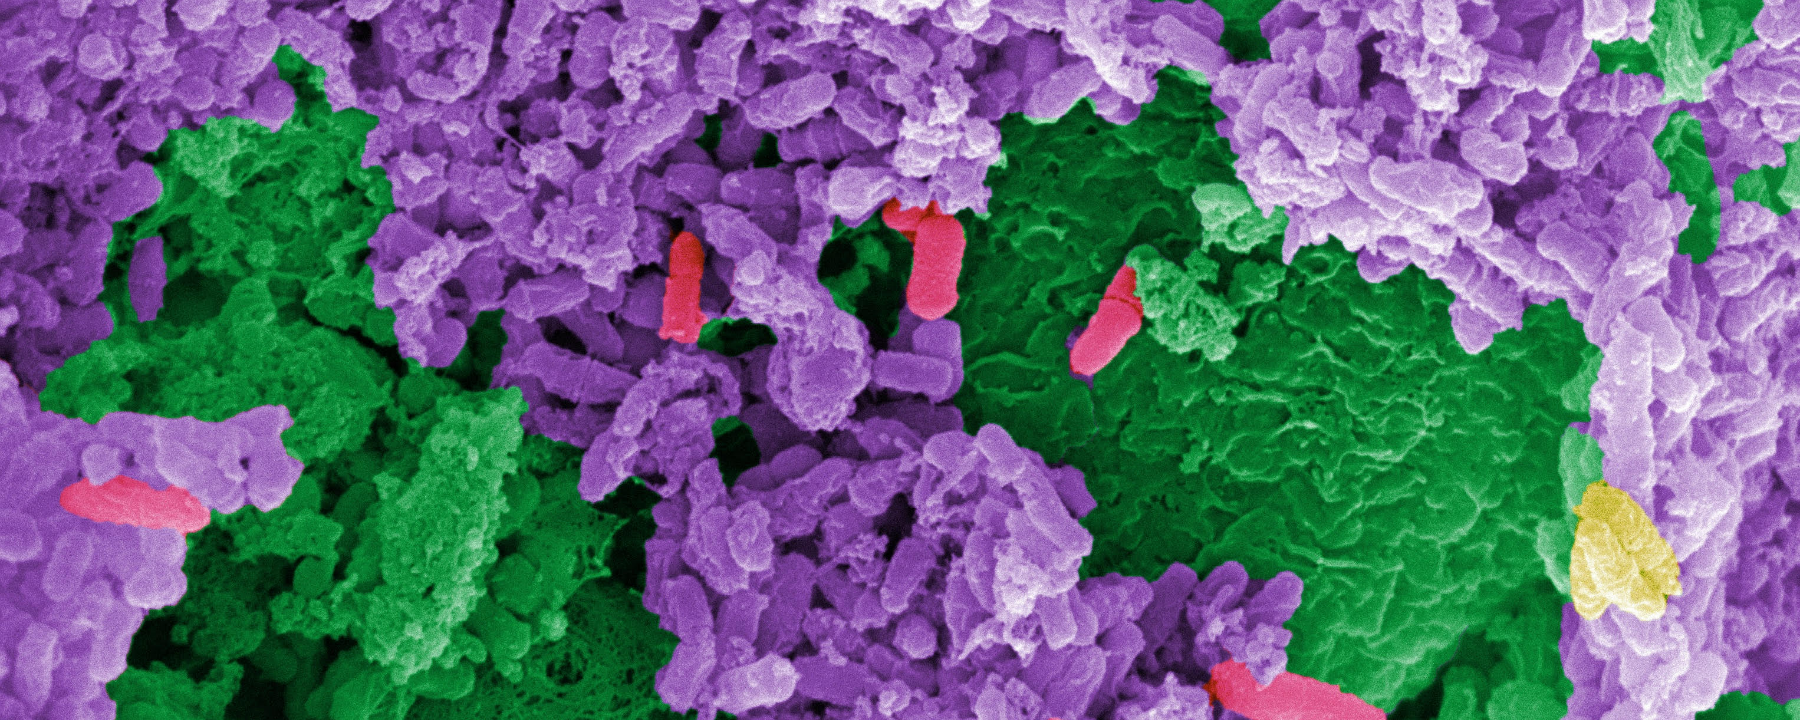 Three Studies Track People's Microbiomes Through Health and Disease